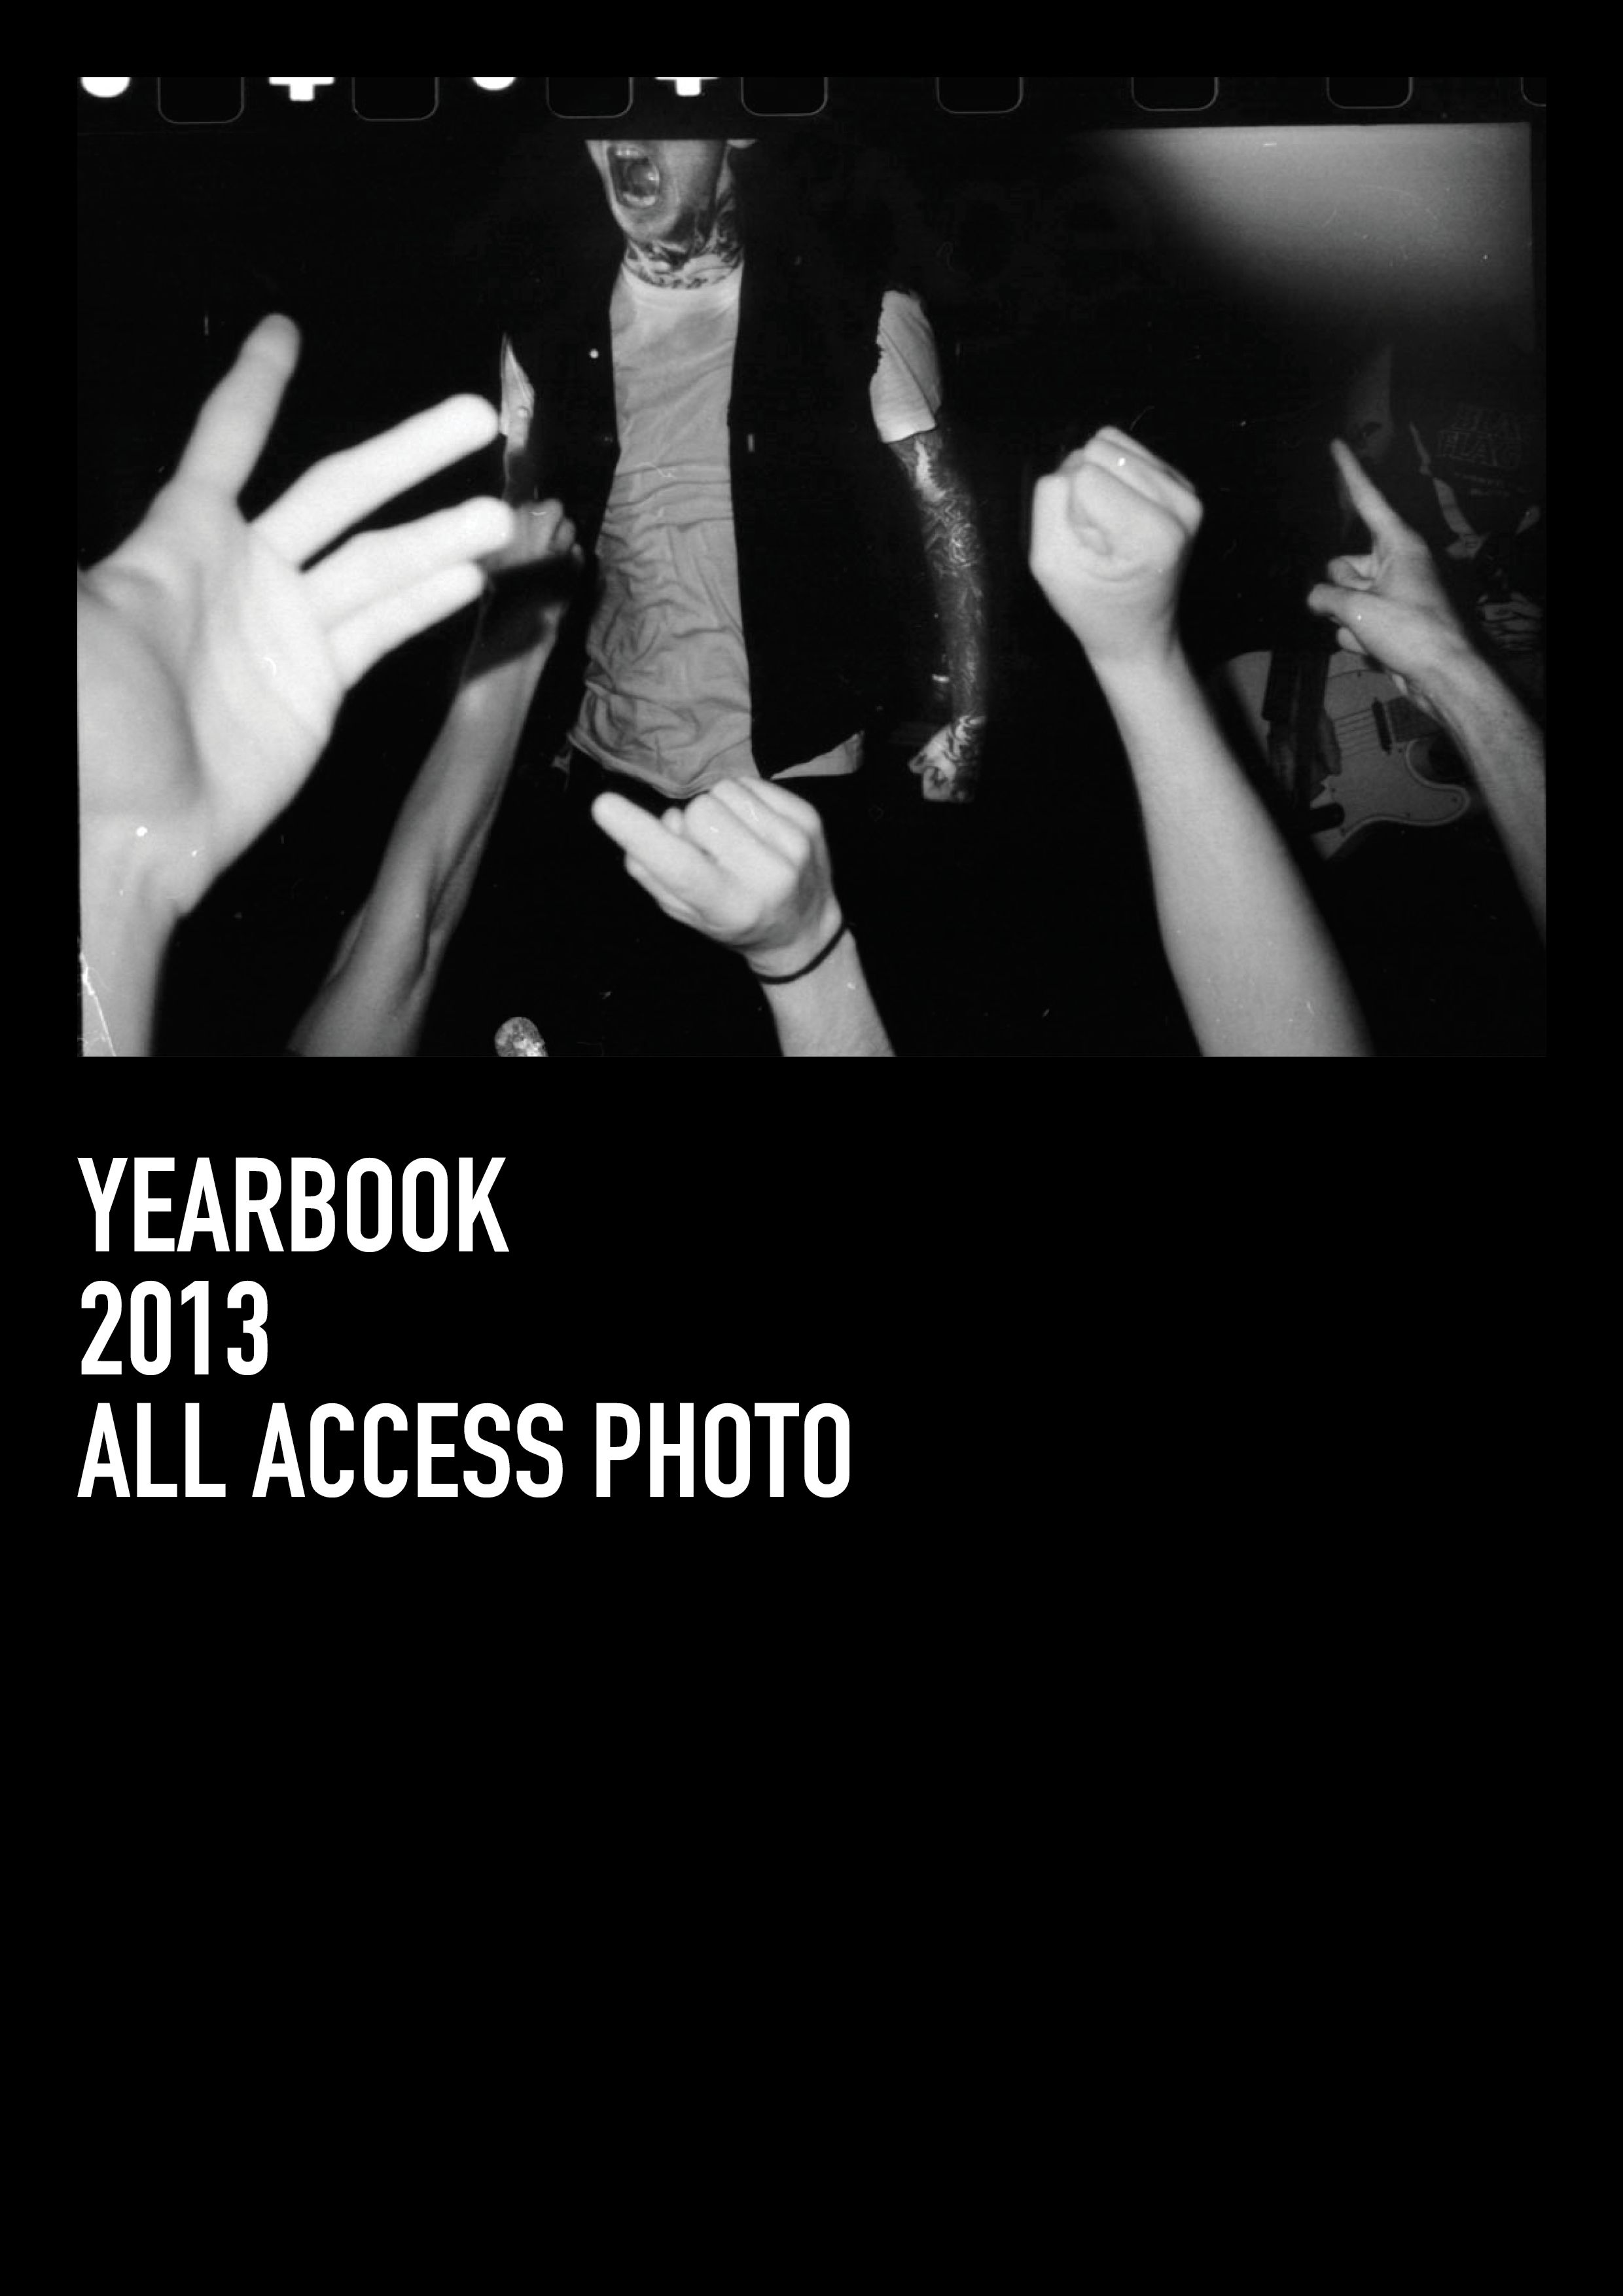 YEARBOOK 2013 / NEW!